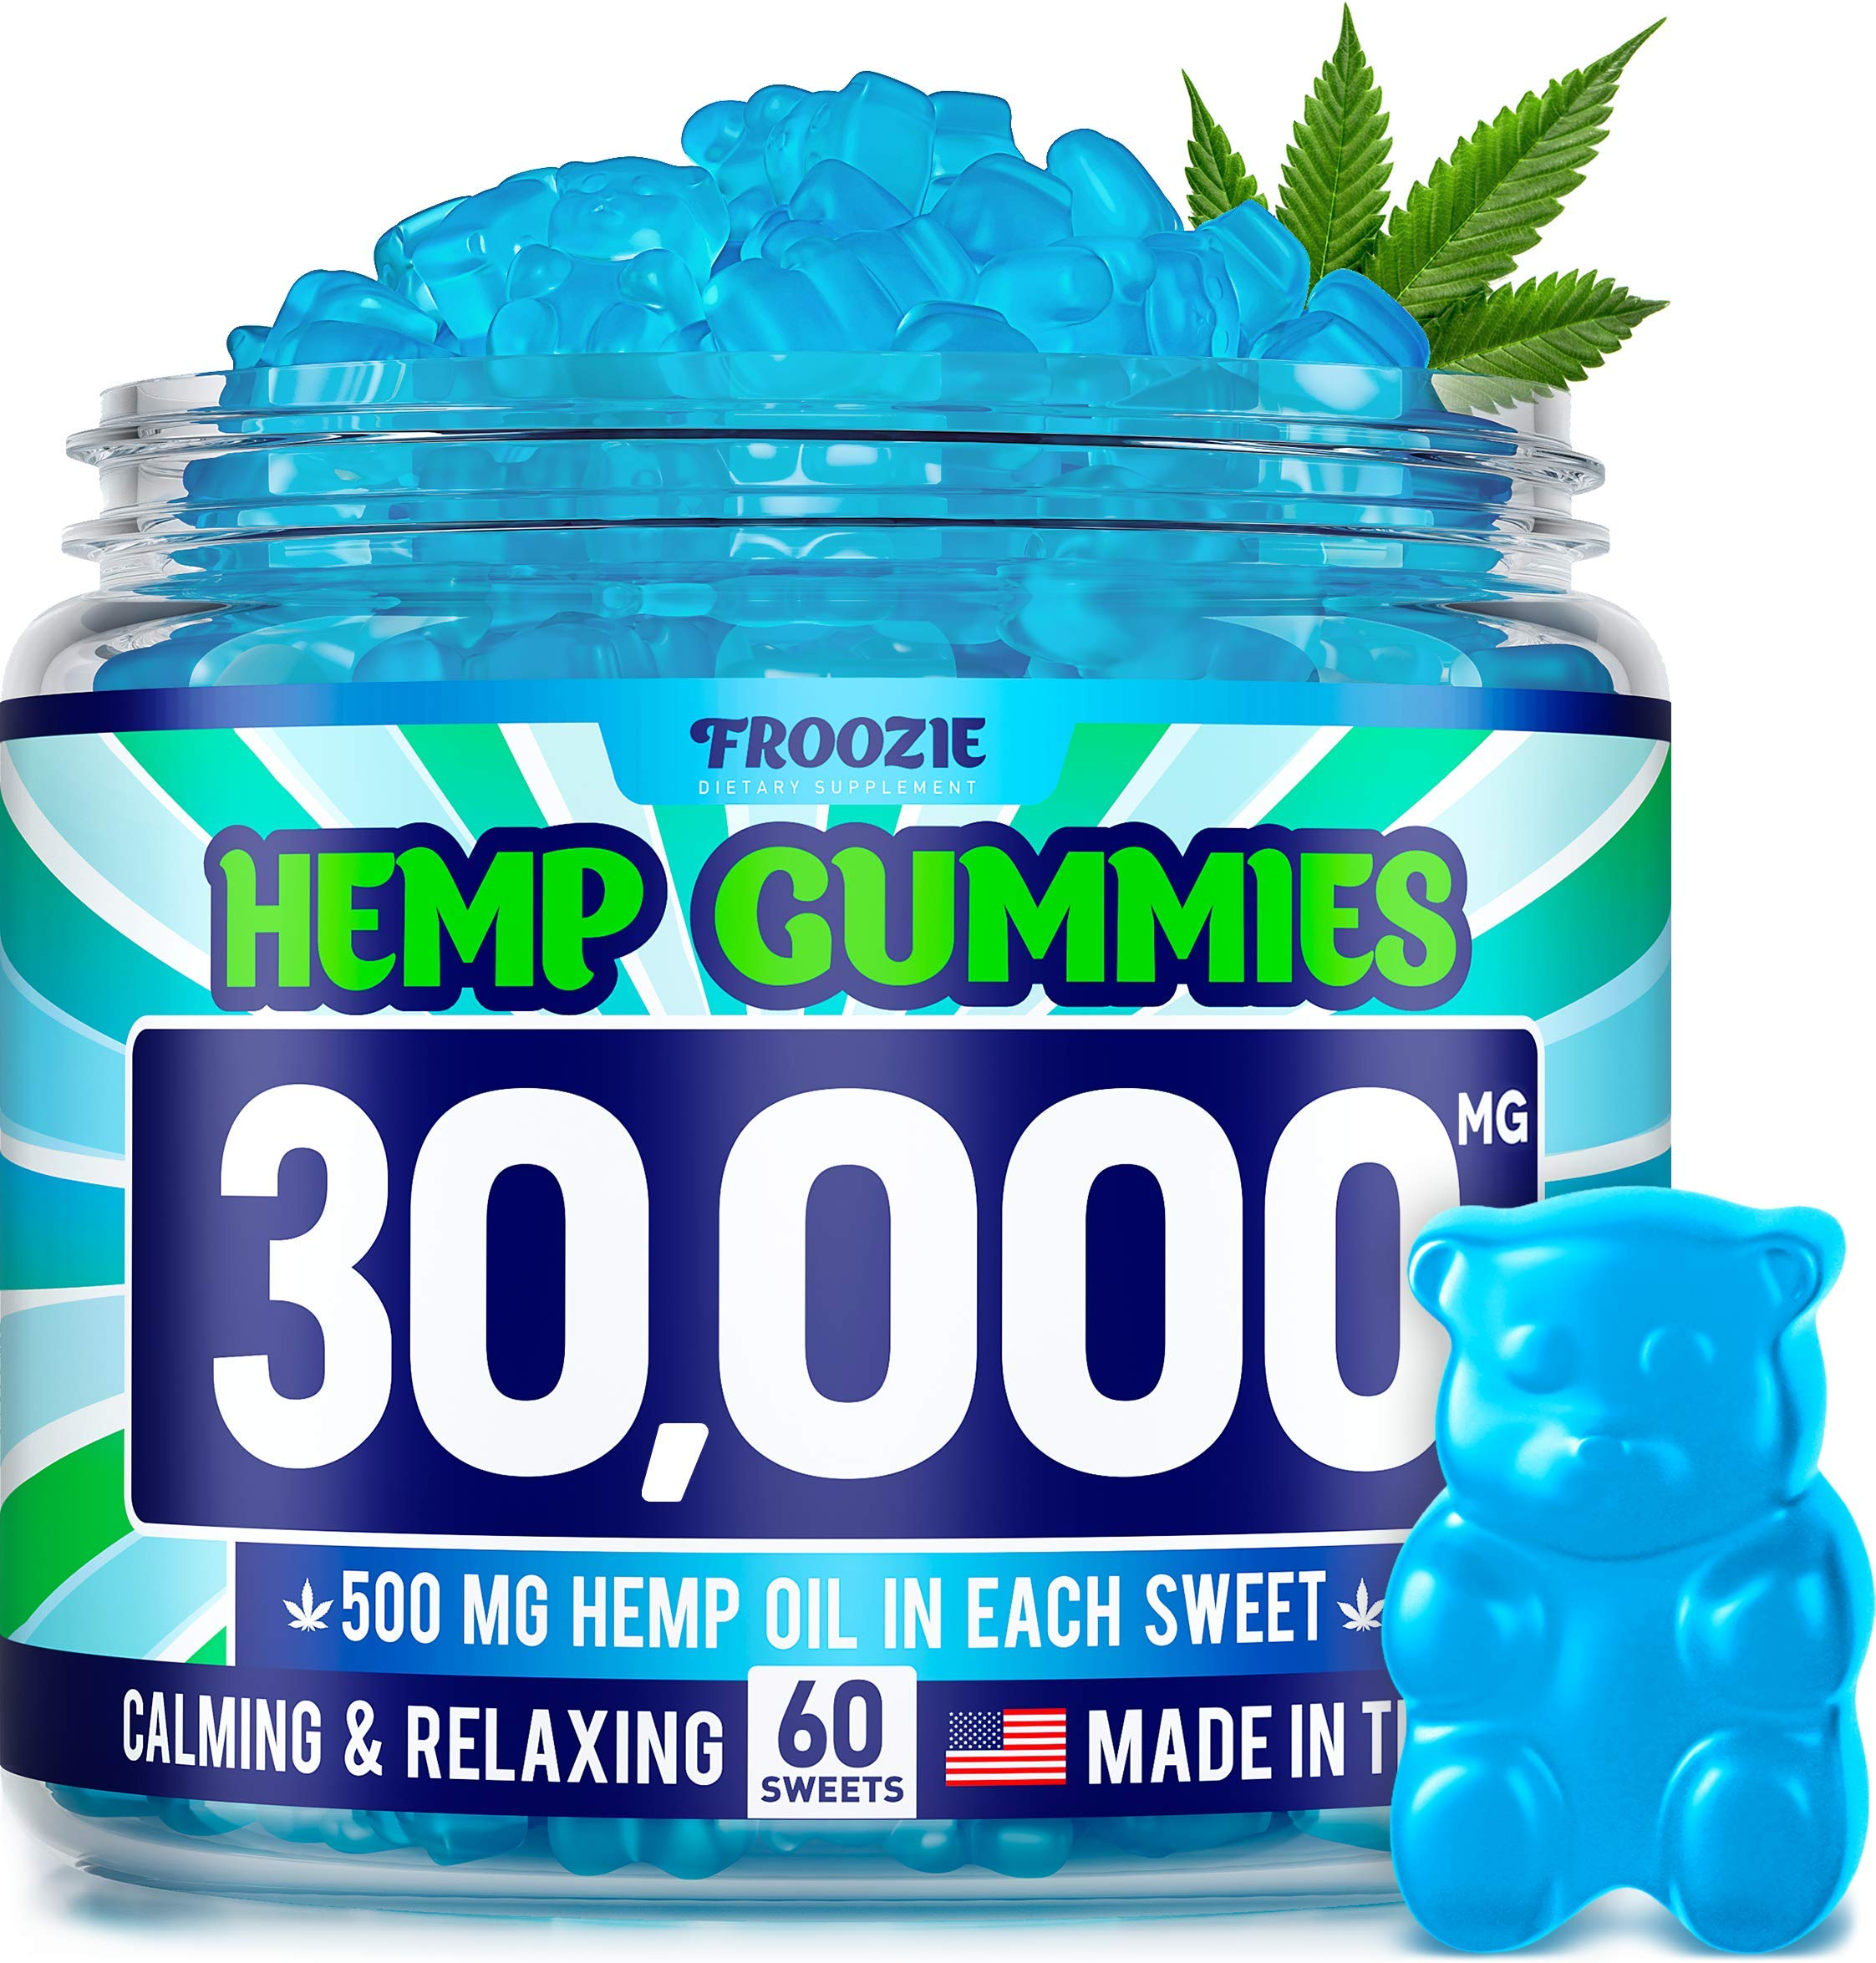 Hemp Gummies 30000 MG - 500 MG Hemp per Gummy, 60 Sweets - Made in USA - Natural Anxiety & Stress Relief - Premium Hemp & Coconut Synergy - Mood & Immunity Support - Ideal Omega 3, 6, 9 Source by Froozie